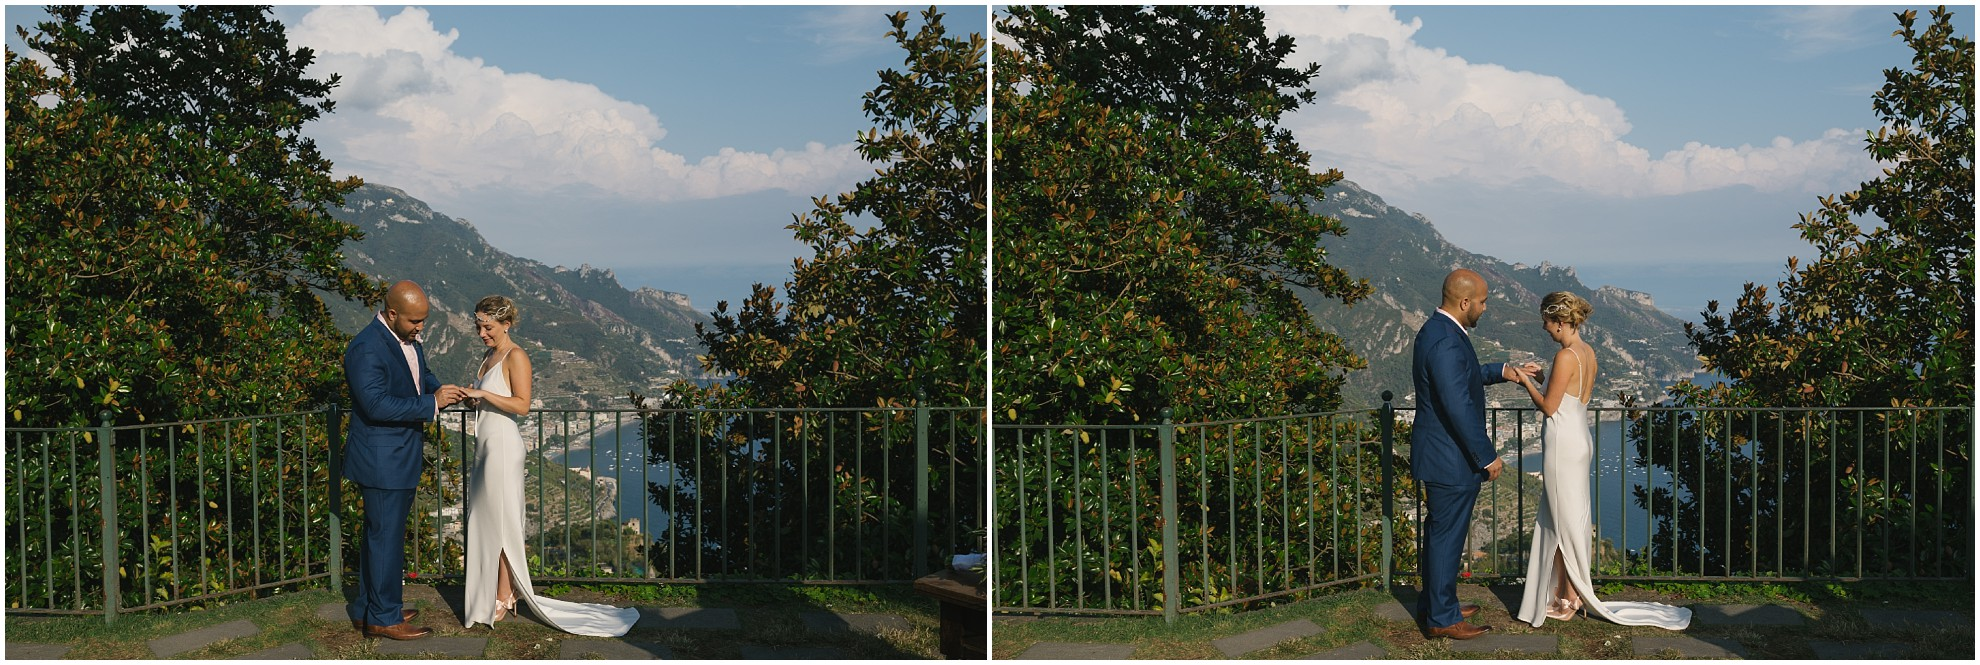 b-amalfi-coast-wedding-photographer-0006